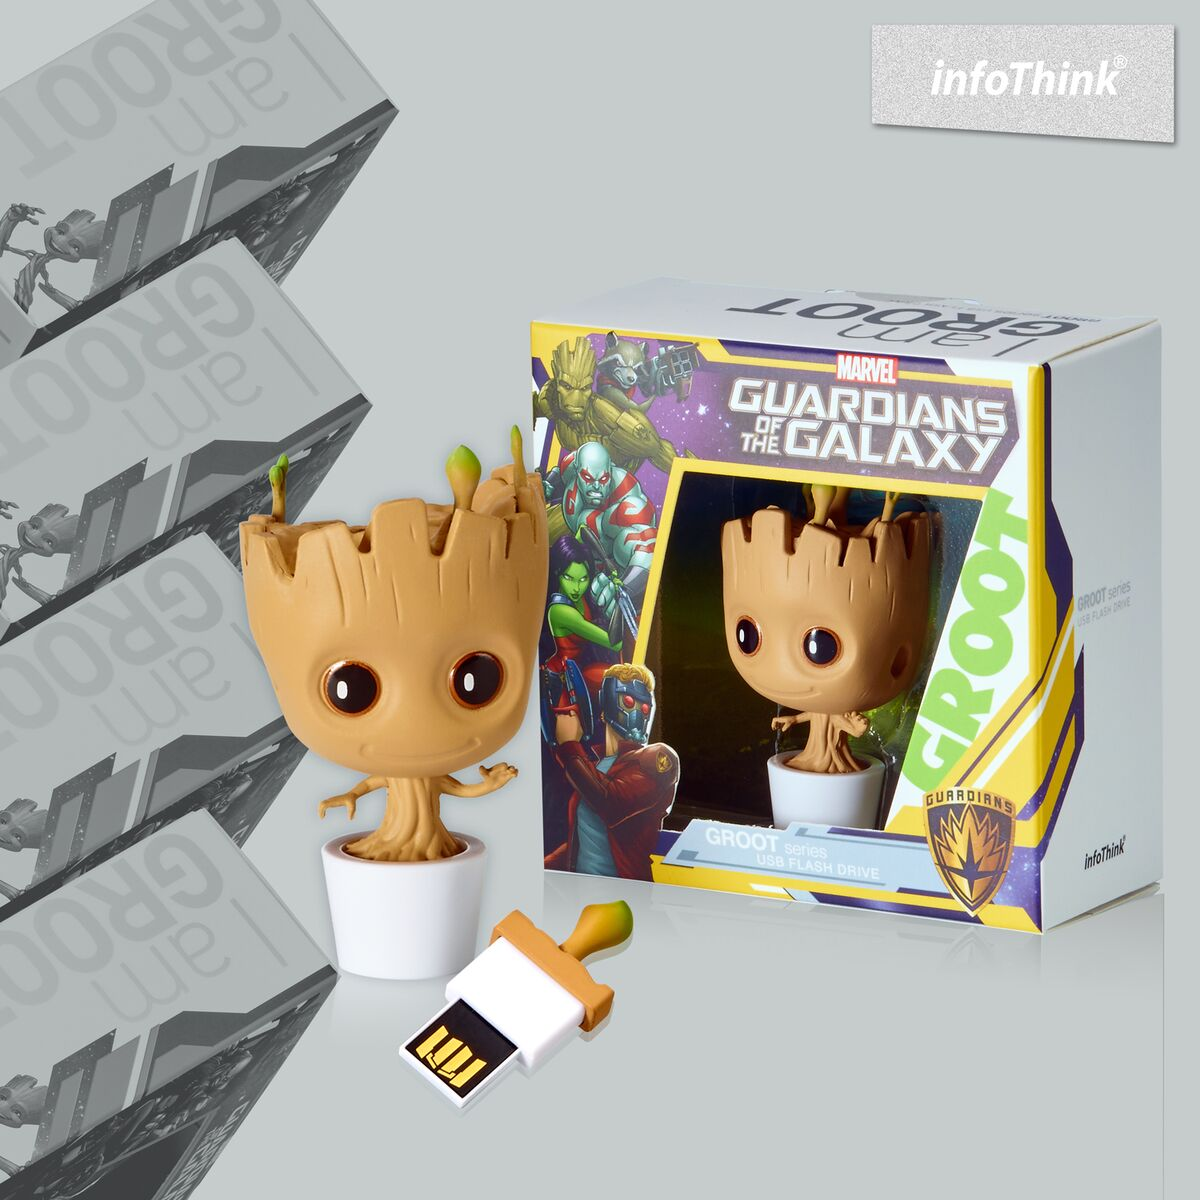 GROOT Series USB (16 GB)